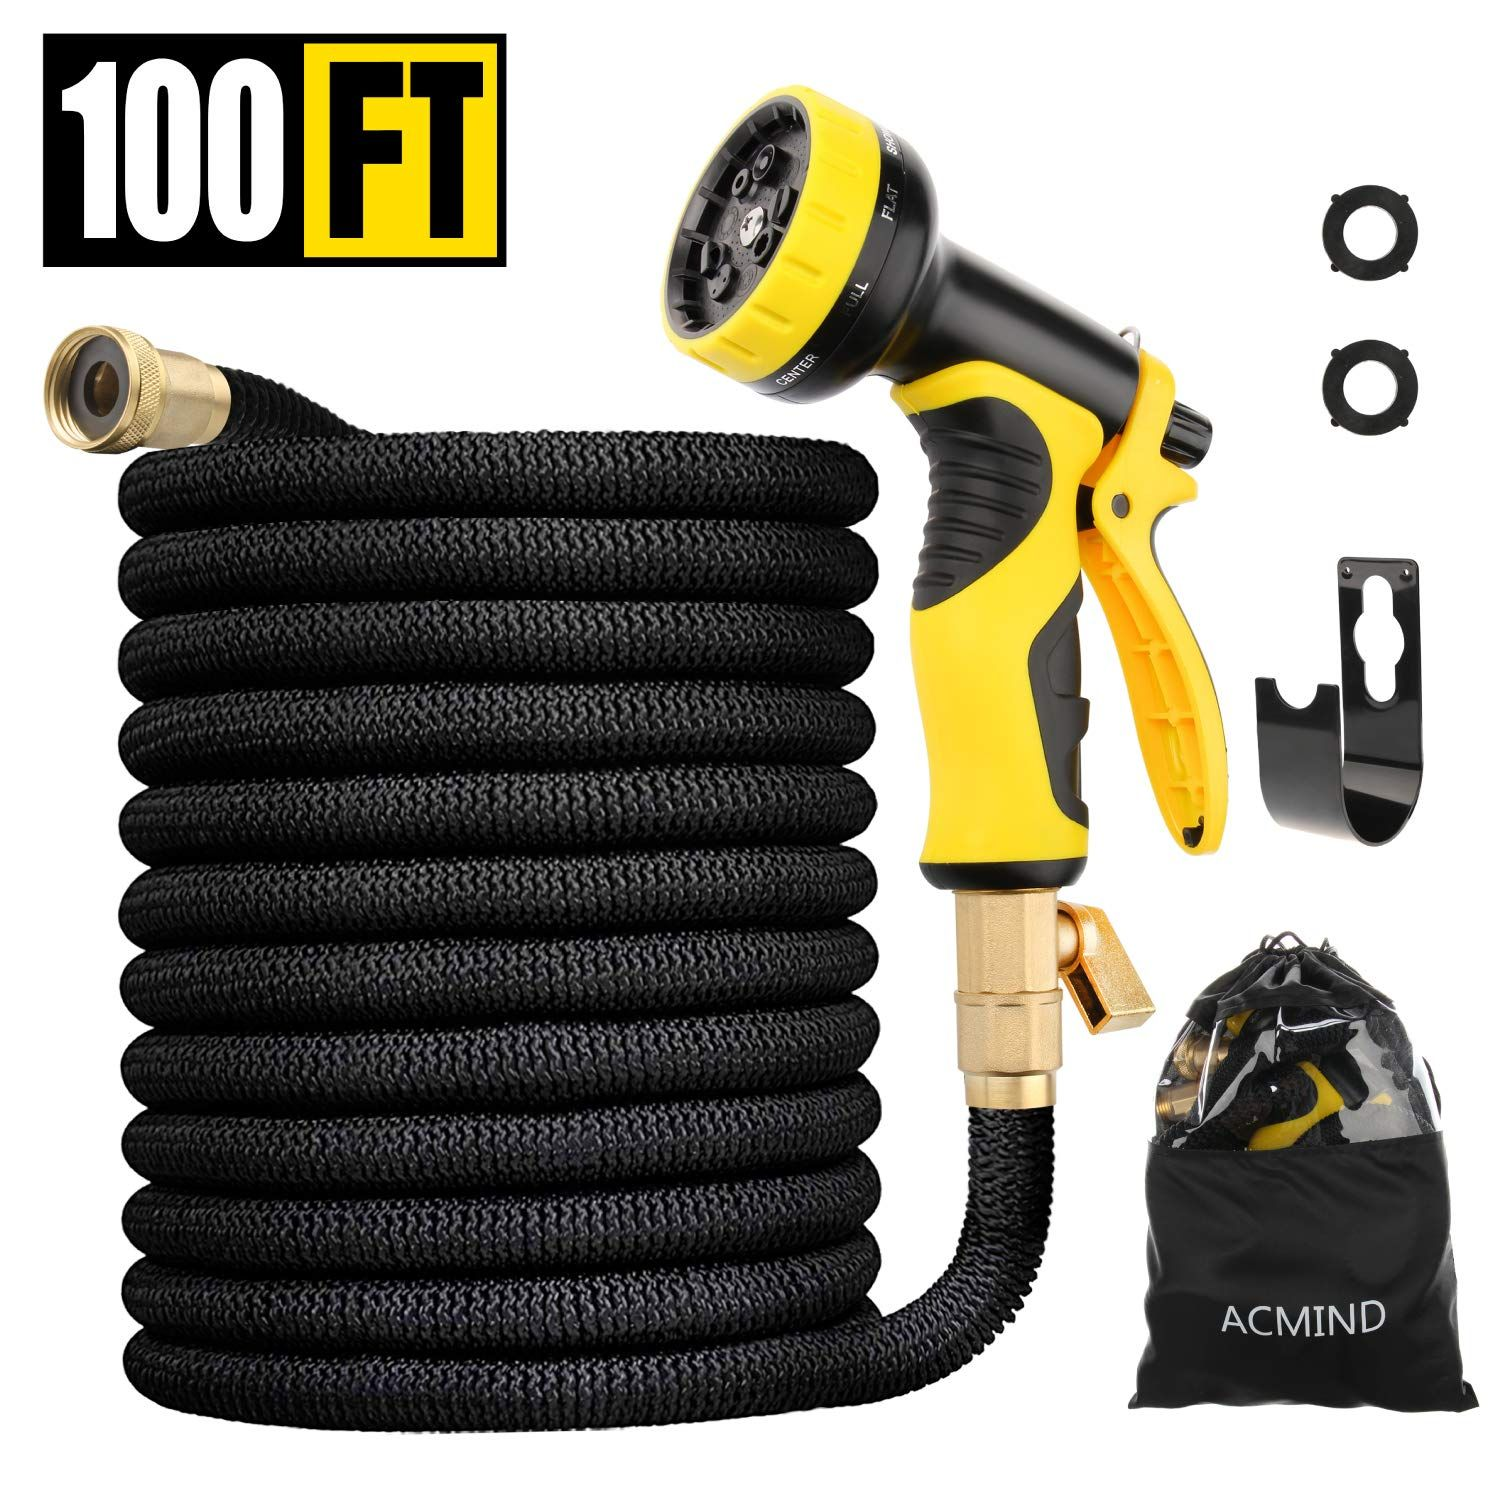 Acmind 100ft Expandable Garden H Flat Hose Garden Hose Brass Fittings